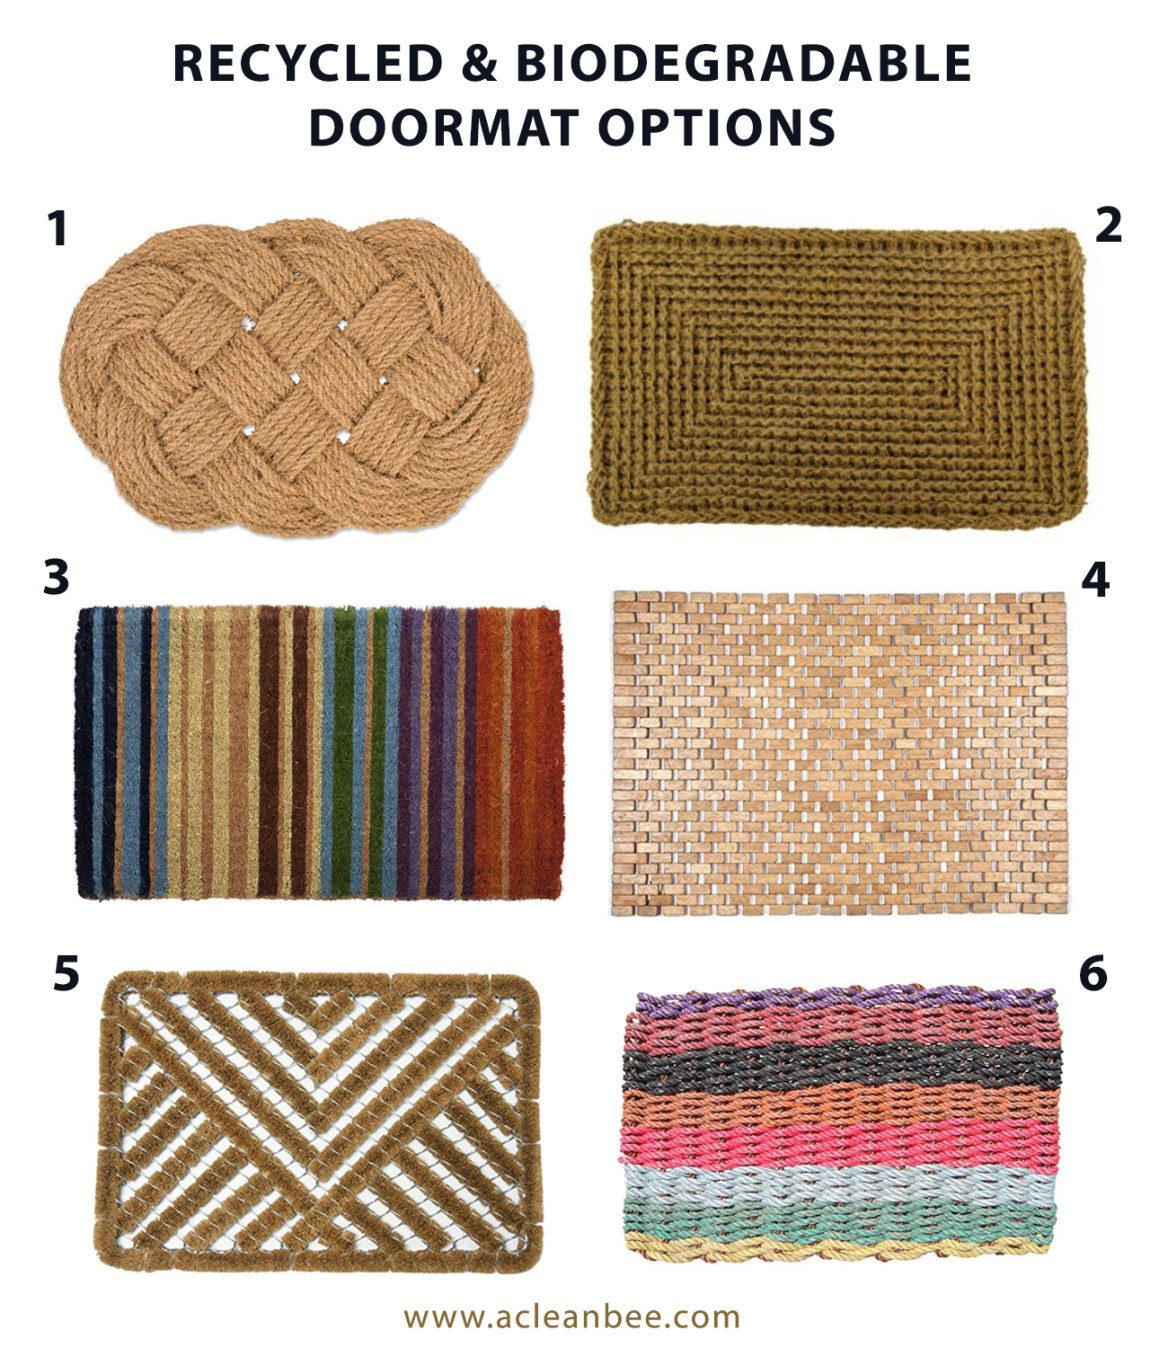 How to Clean a Doormat - A Clean Bee